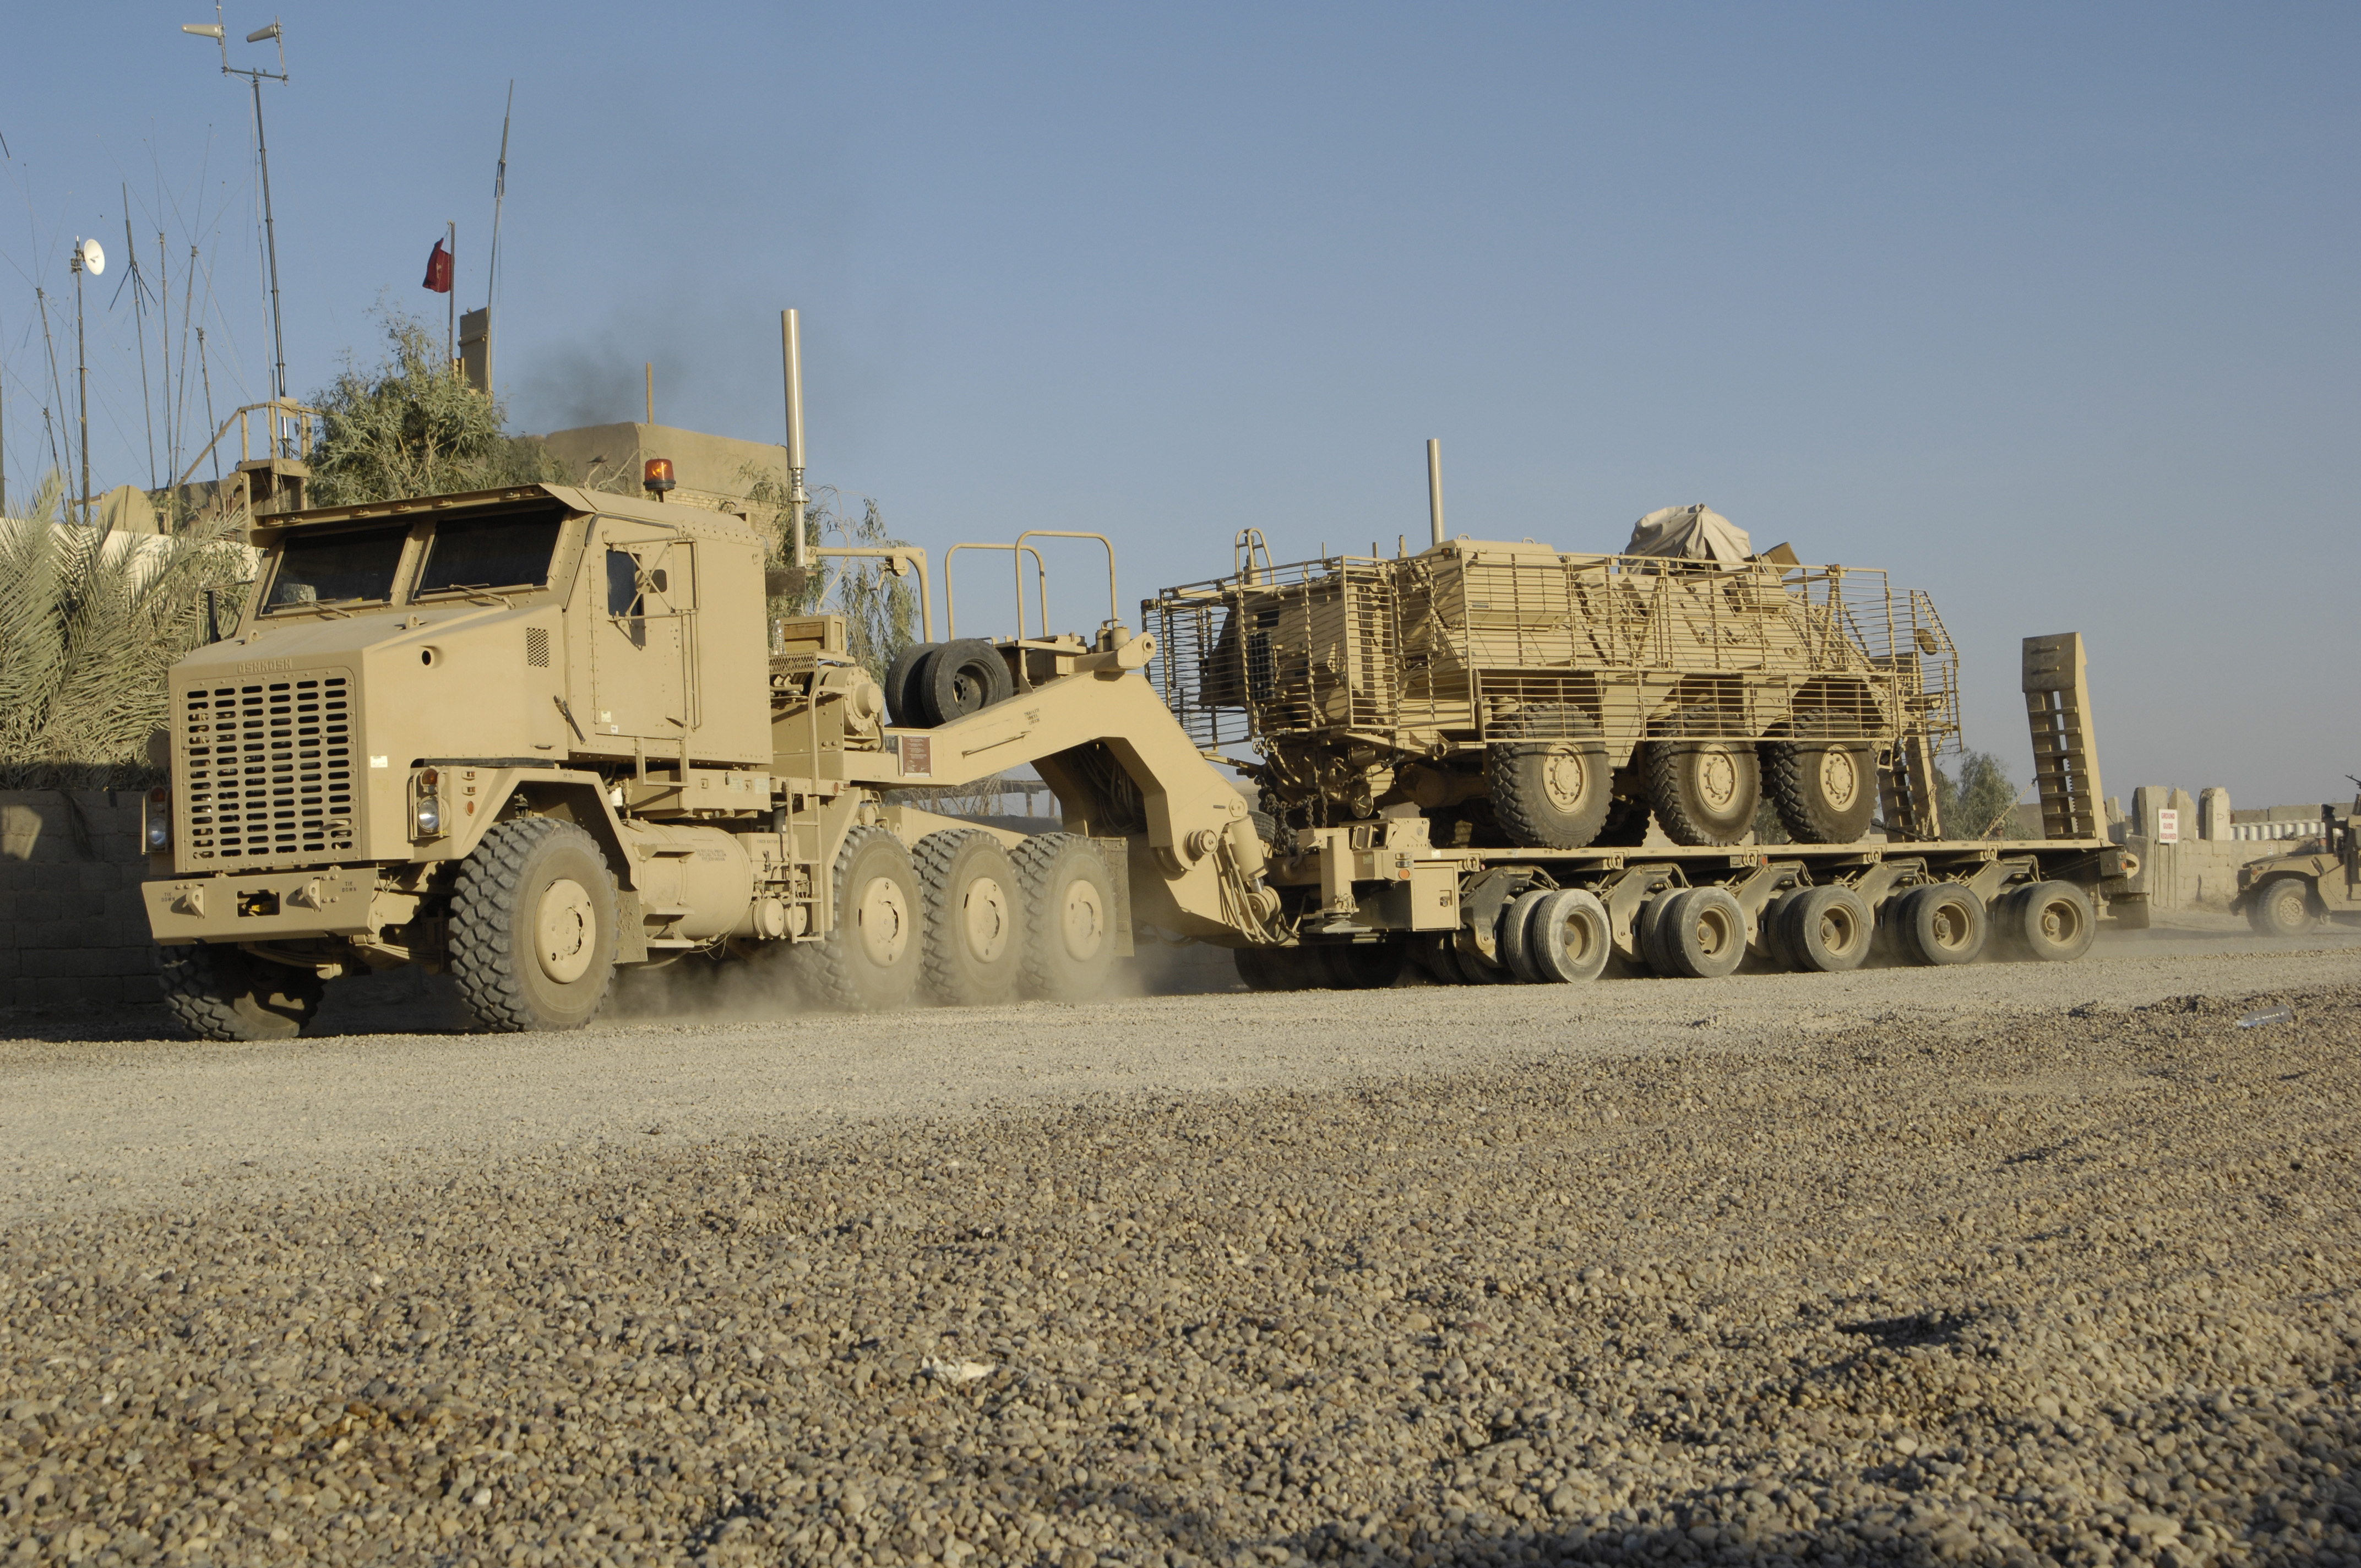 Semi Tractor For Sale >> Heavy Equipment Transport System - Military Wiki